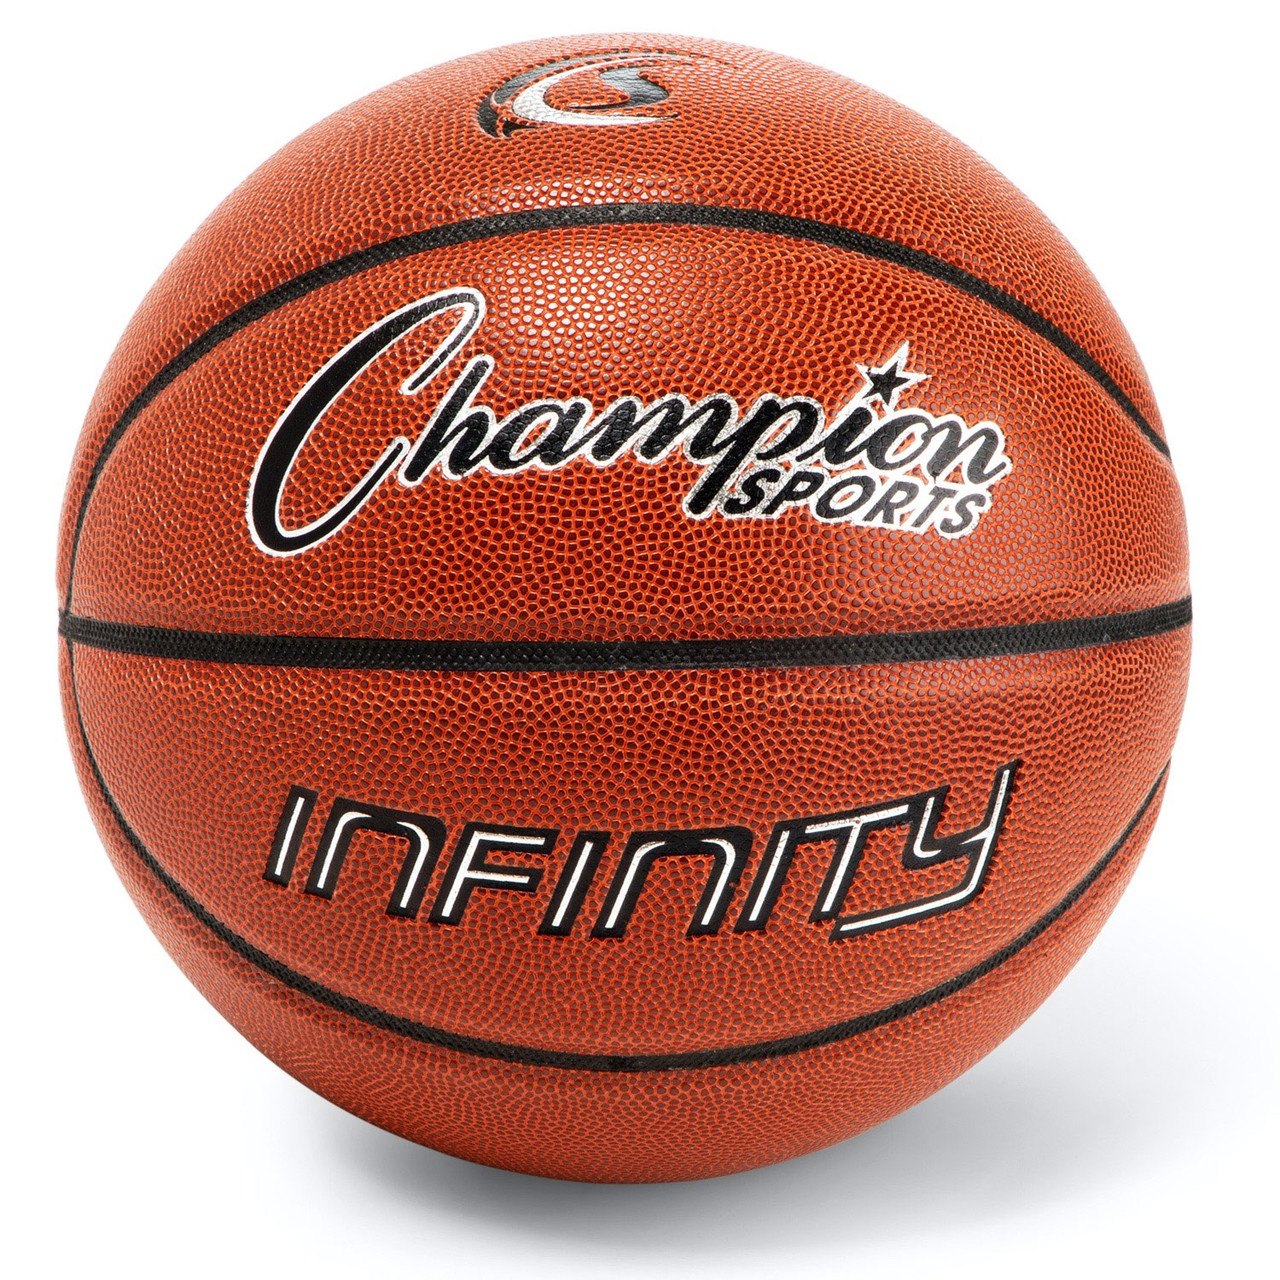 Champion Sports Infinity Composite Basketball